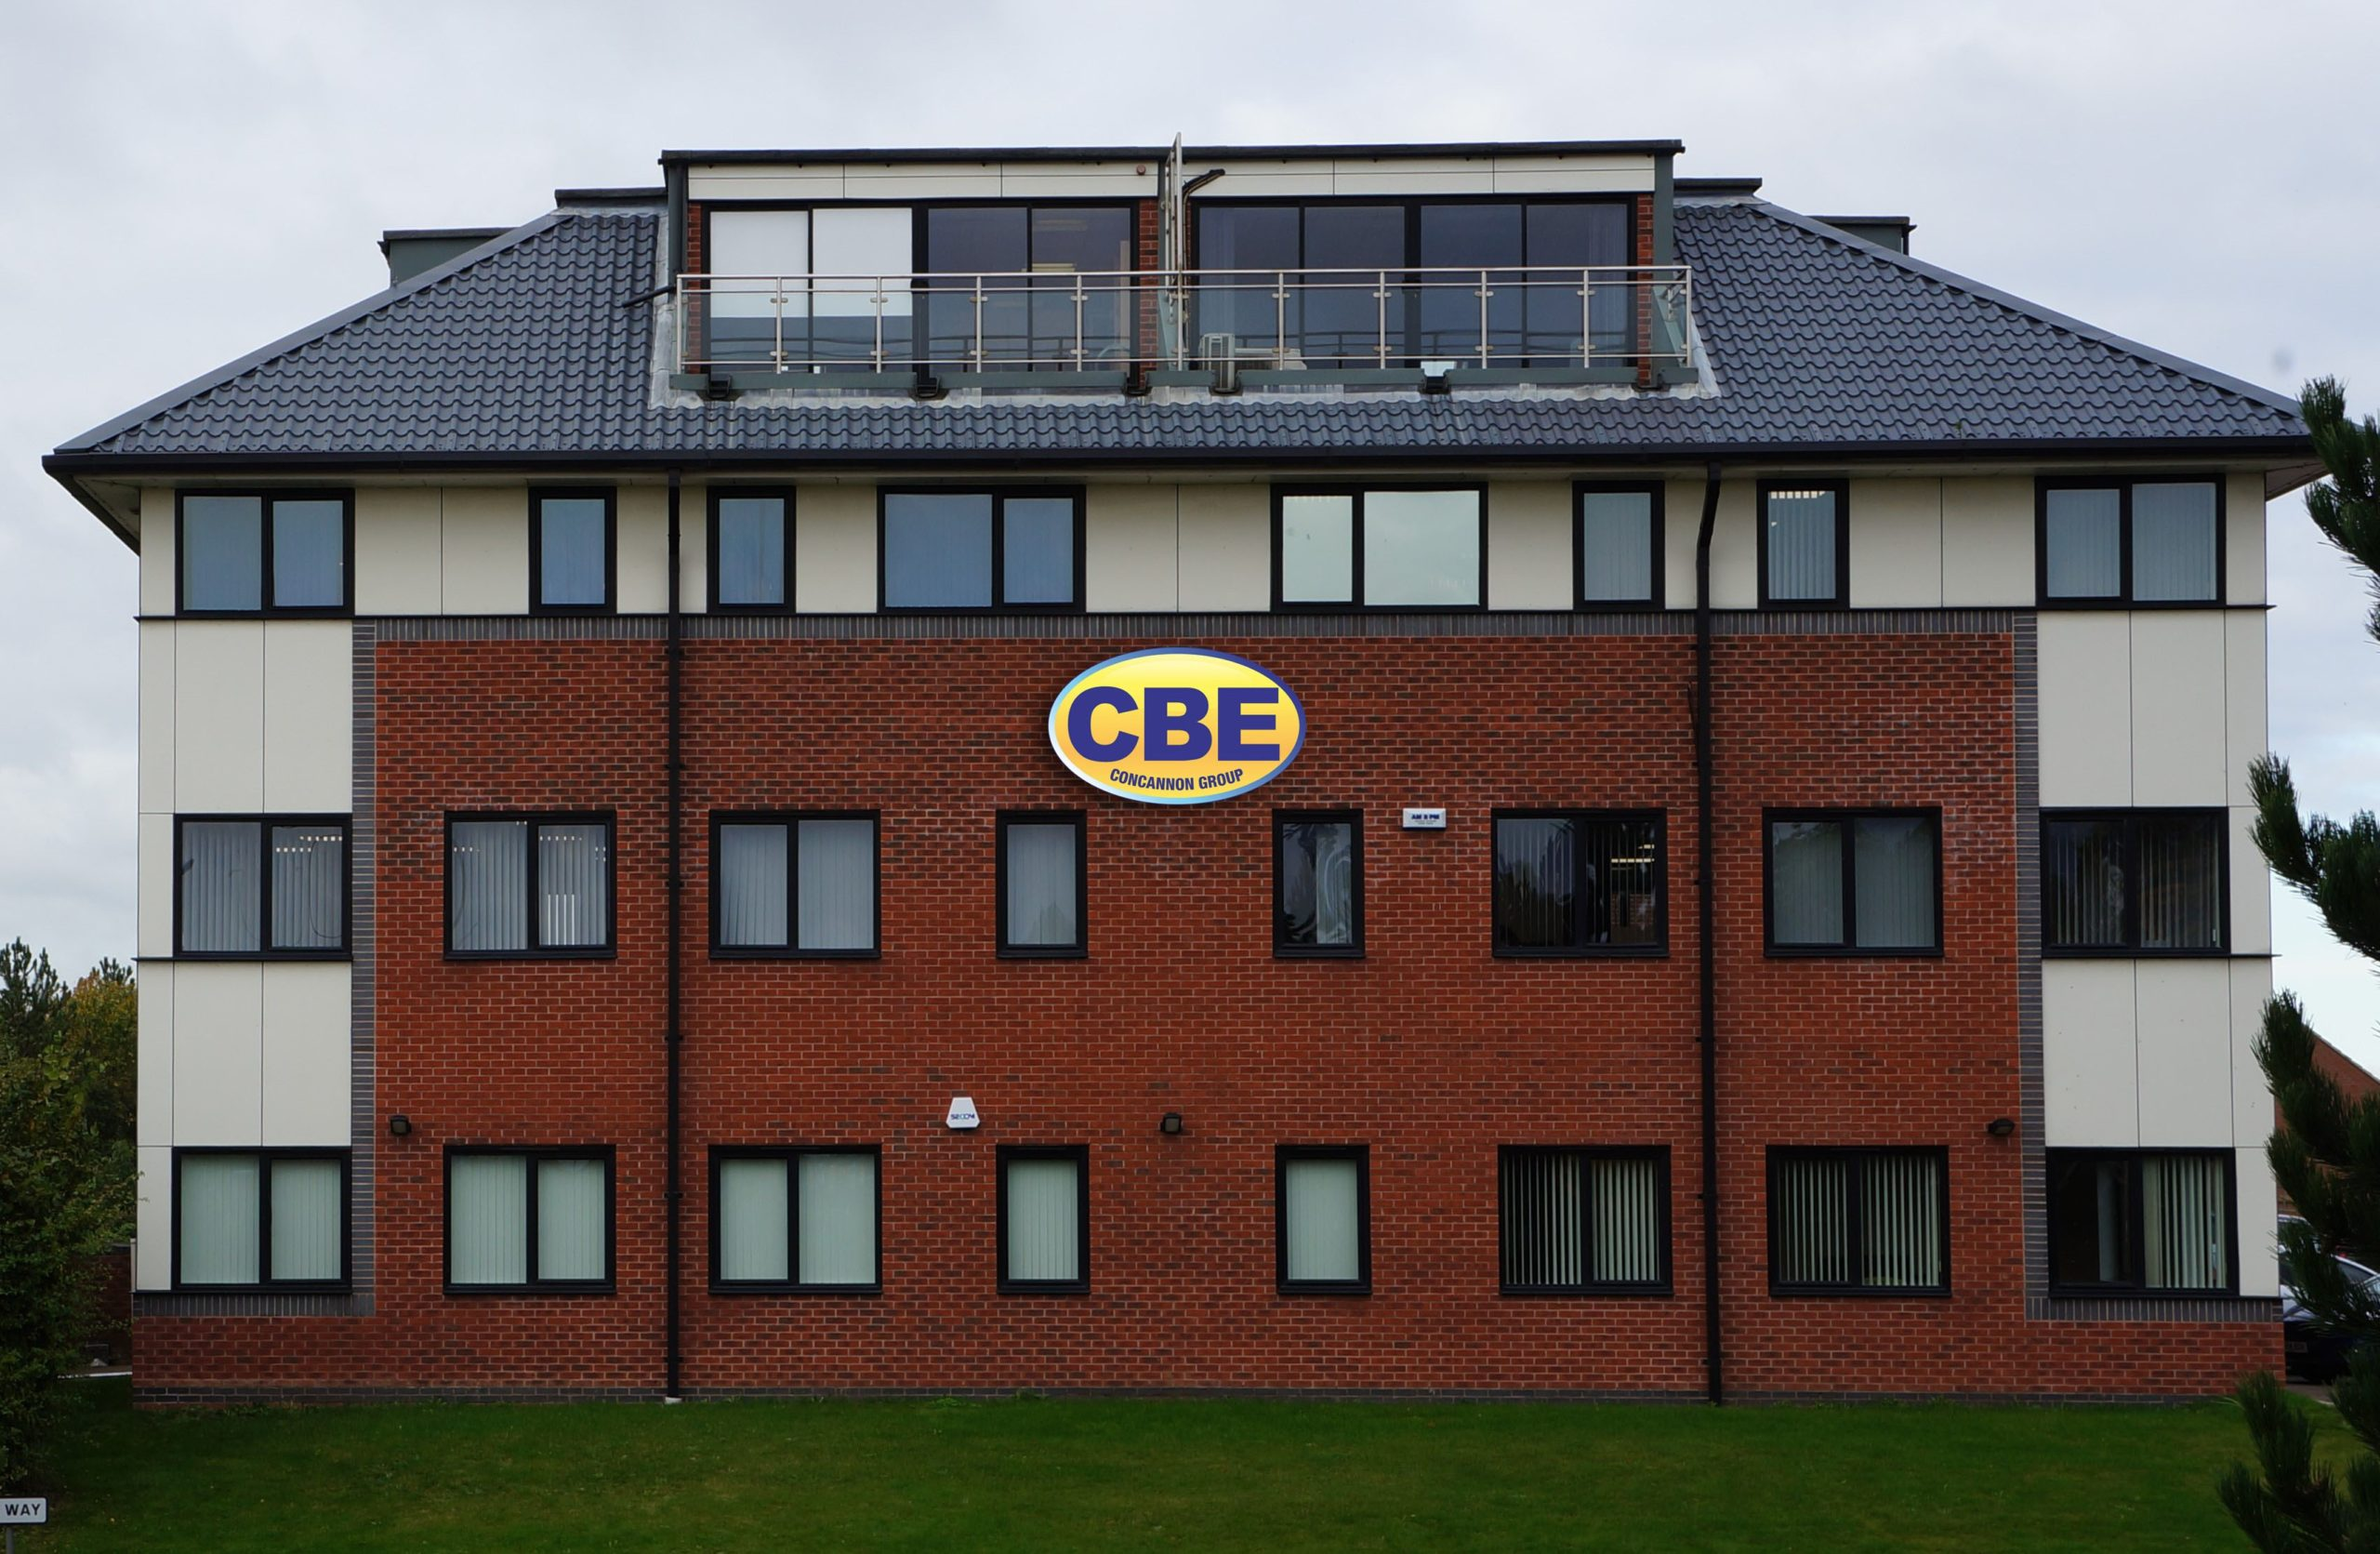 CBE's continued growth within the UK was recently highlighted in the Forecourt Trader